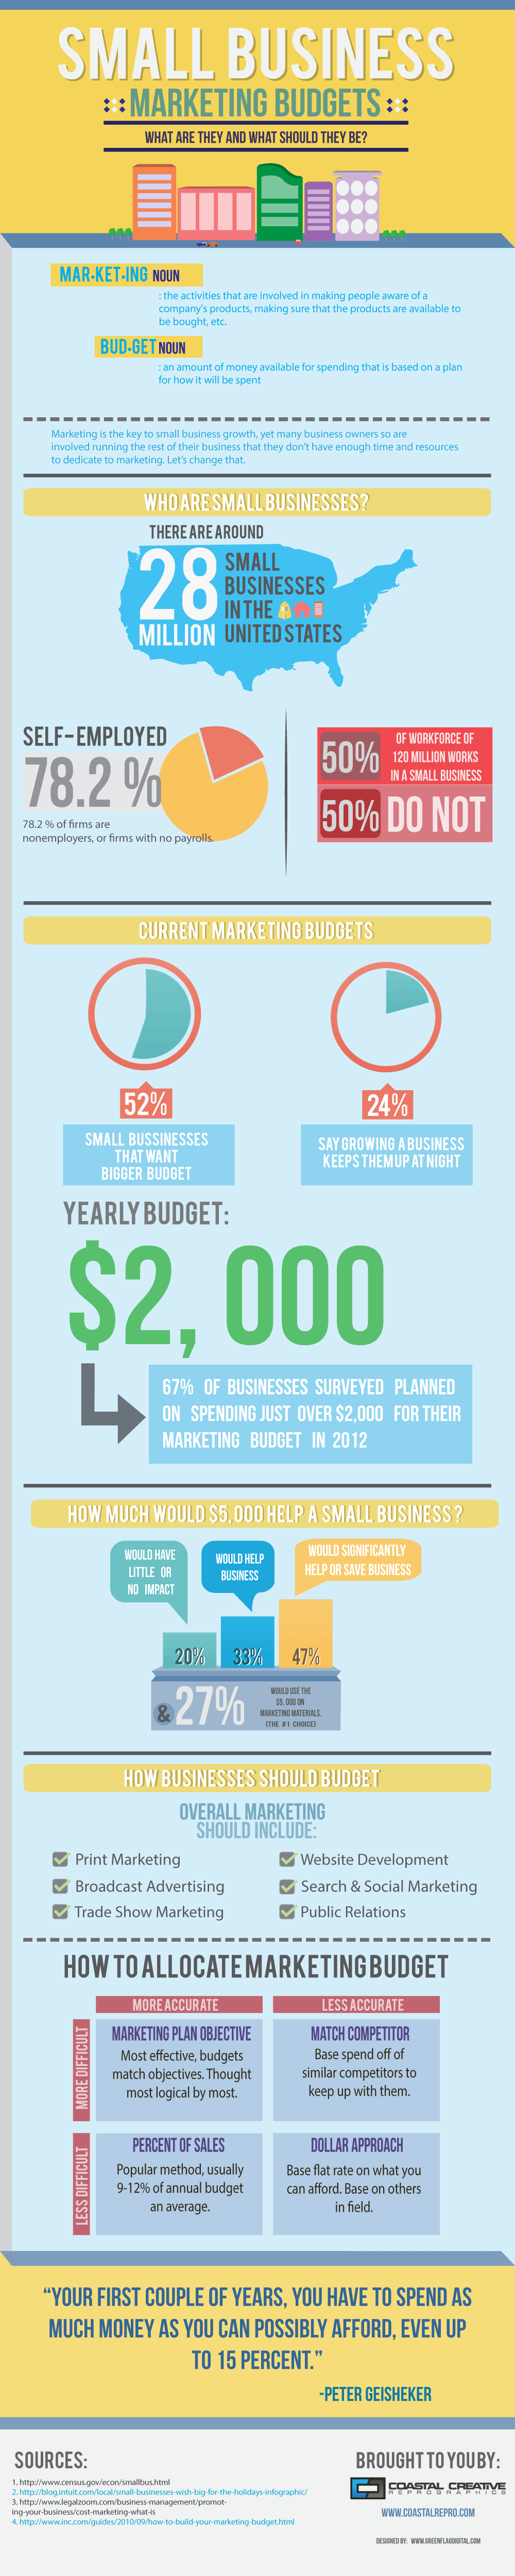 Small Business Marketing Budgets